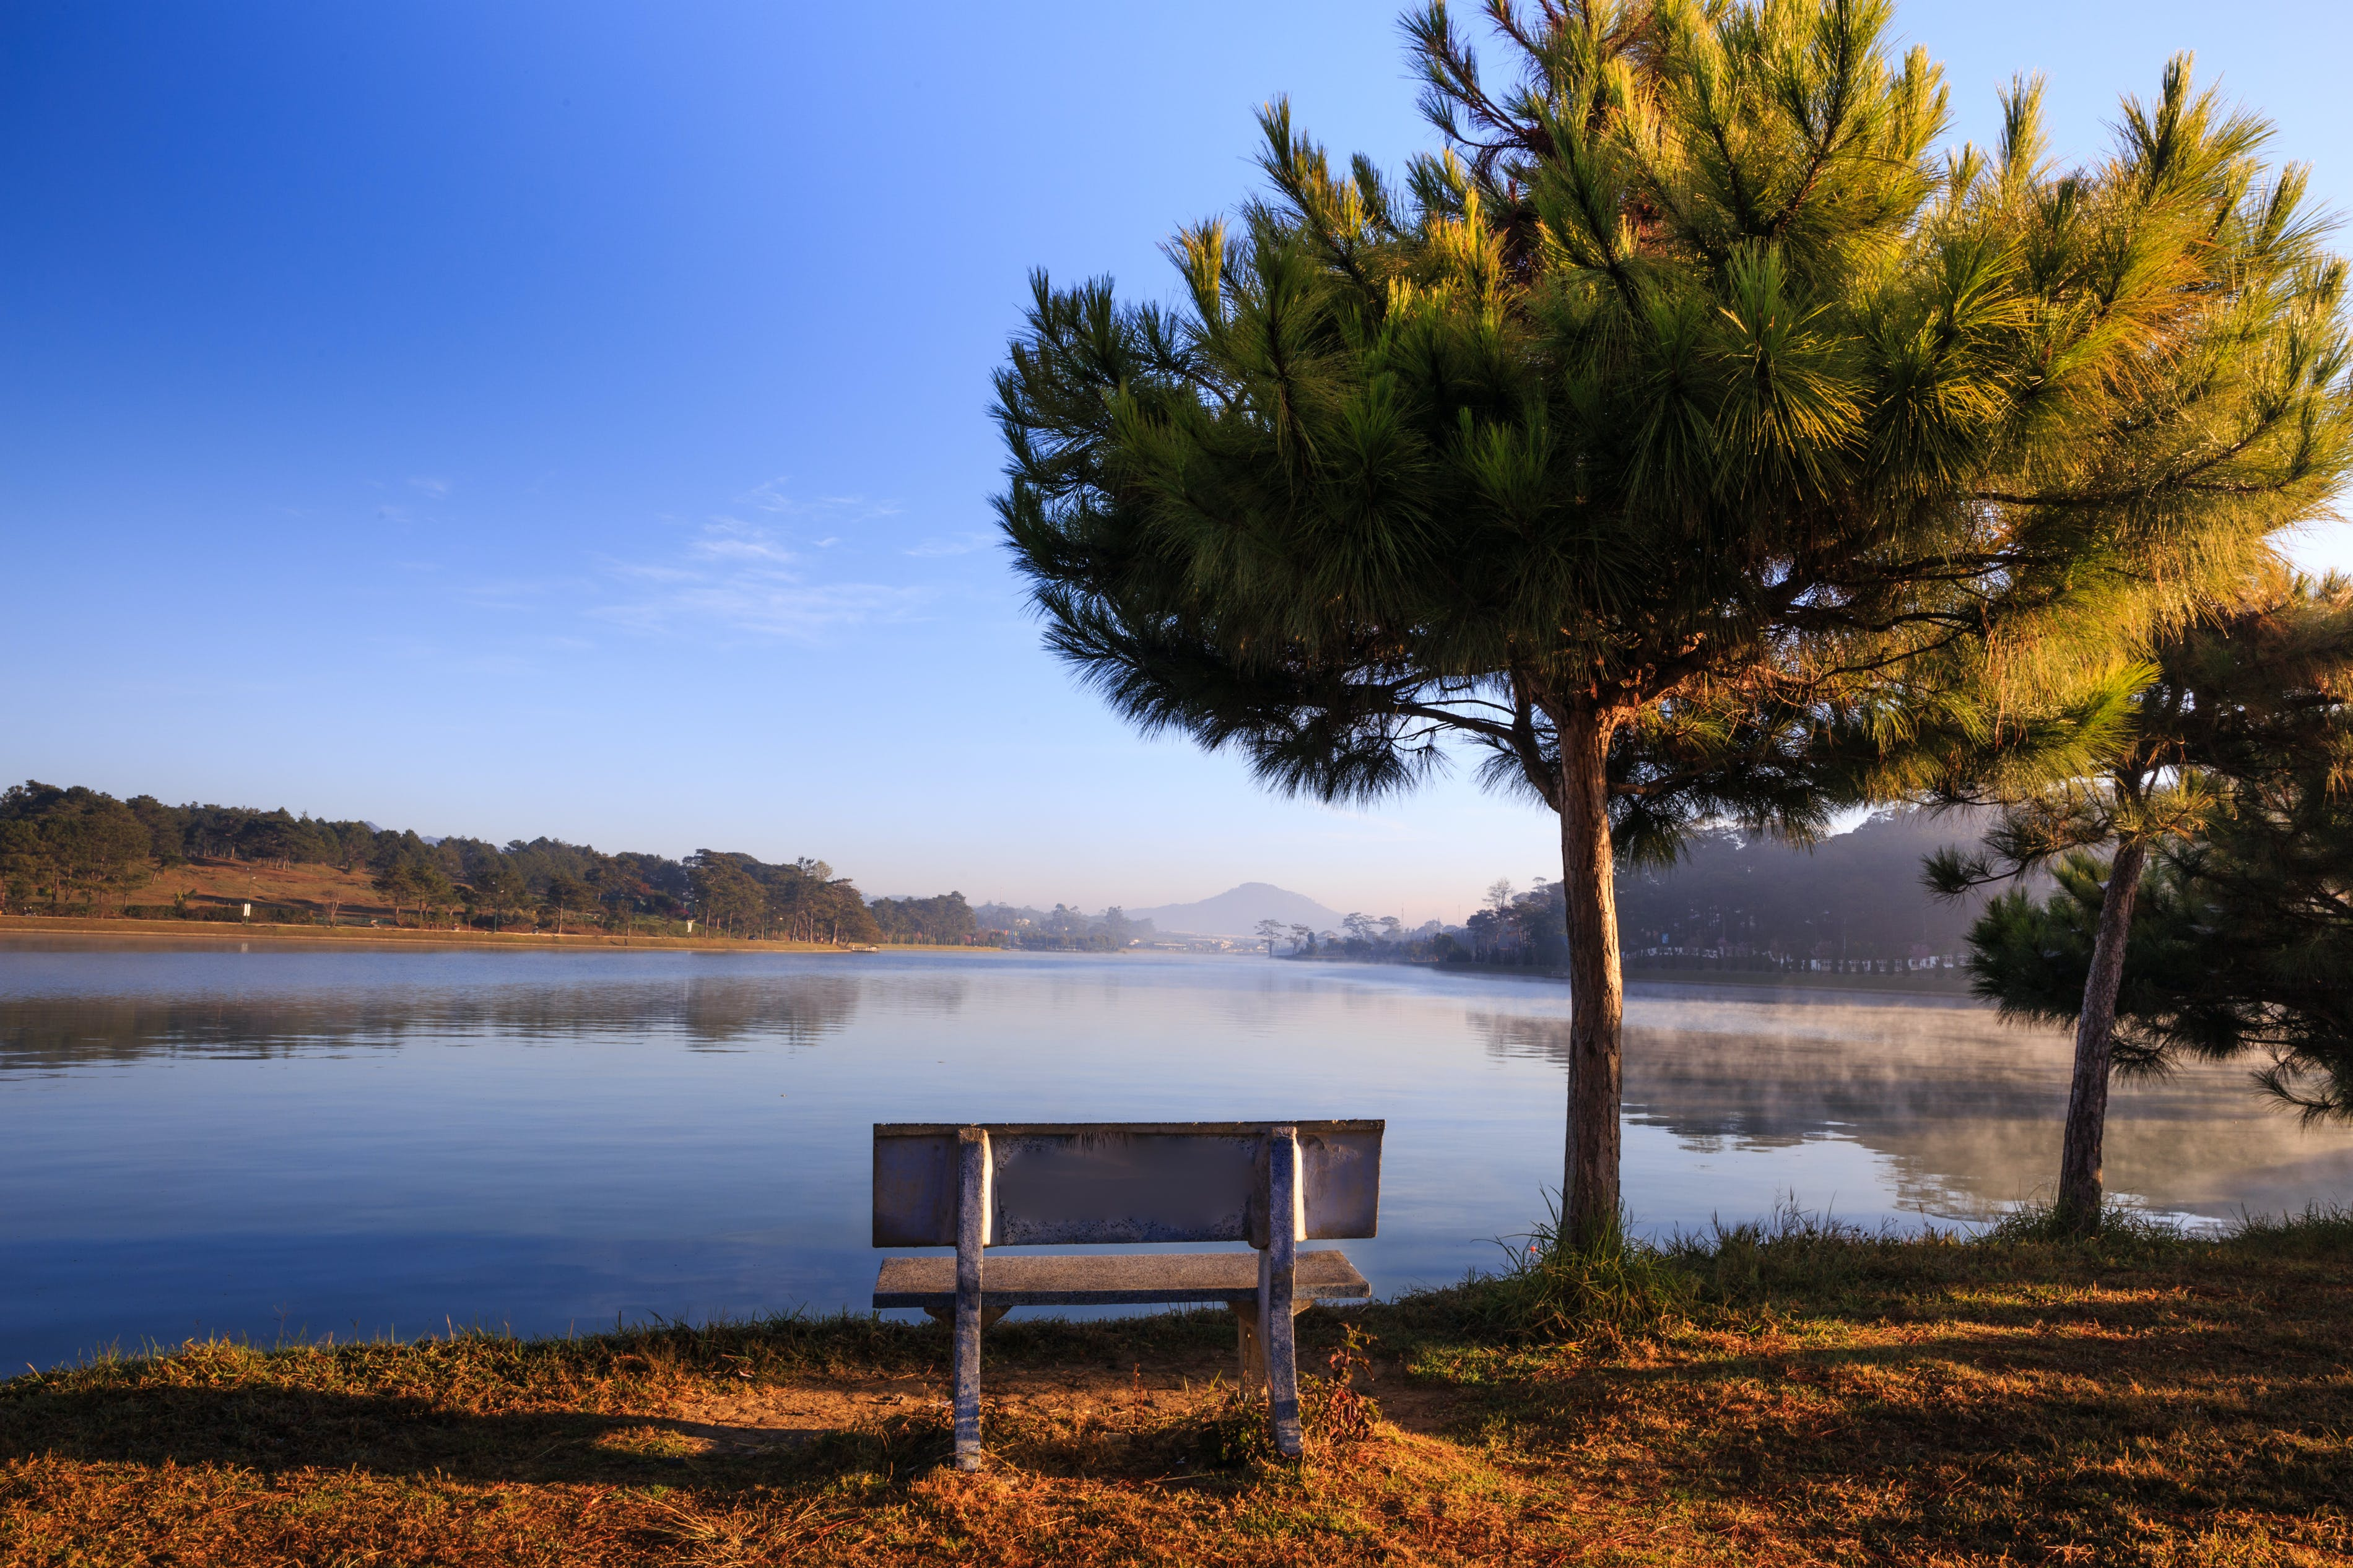 White Wooden Bench Near Tree and Body of Water